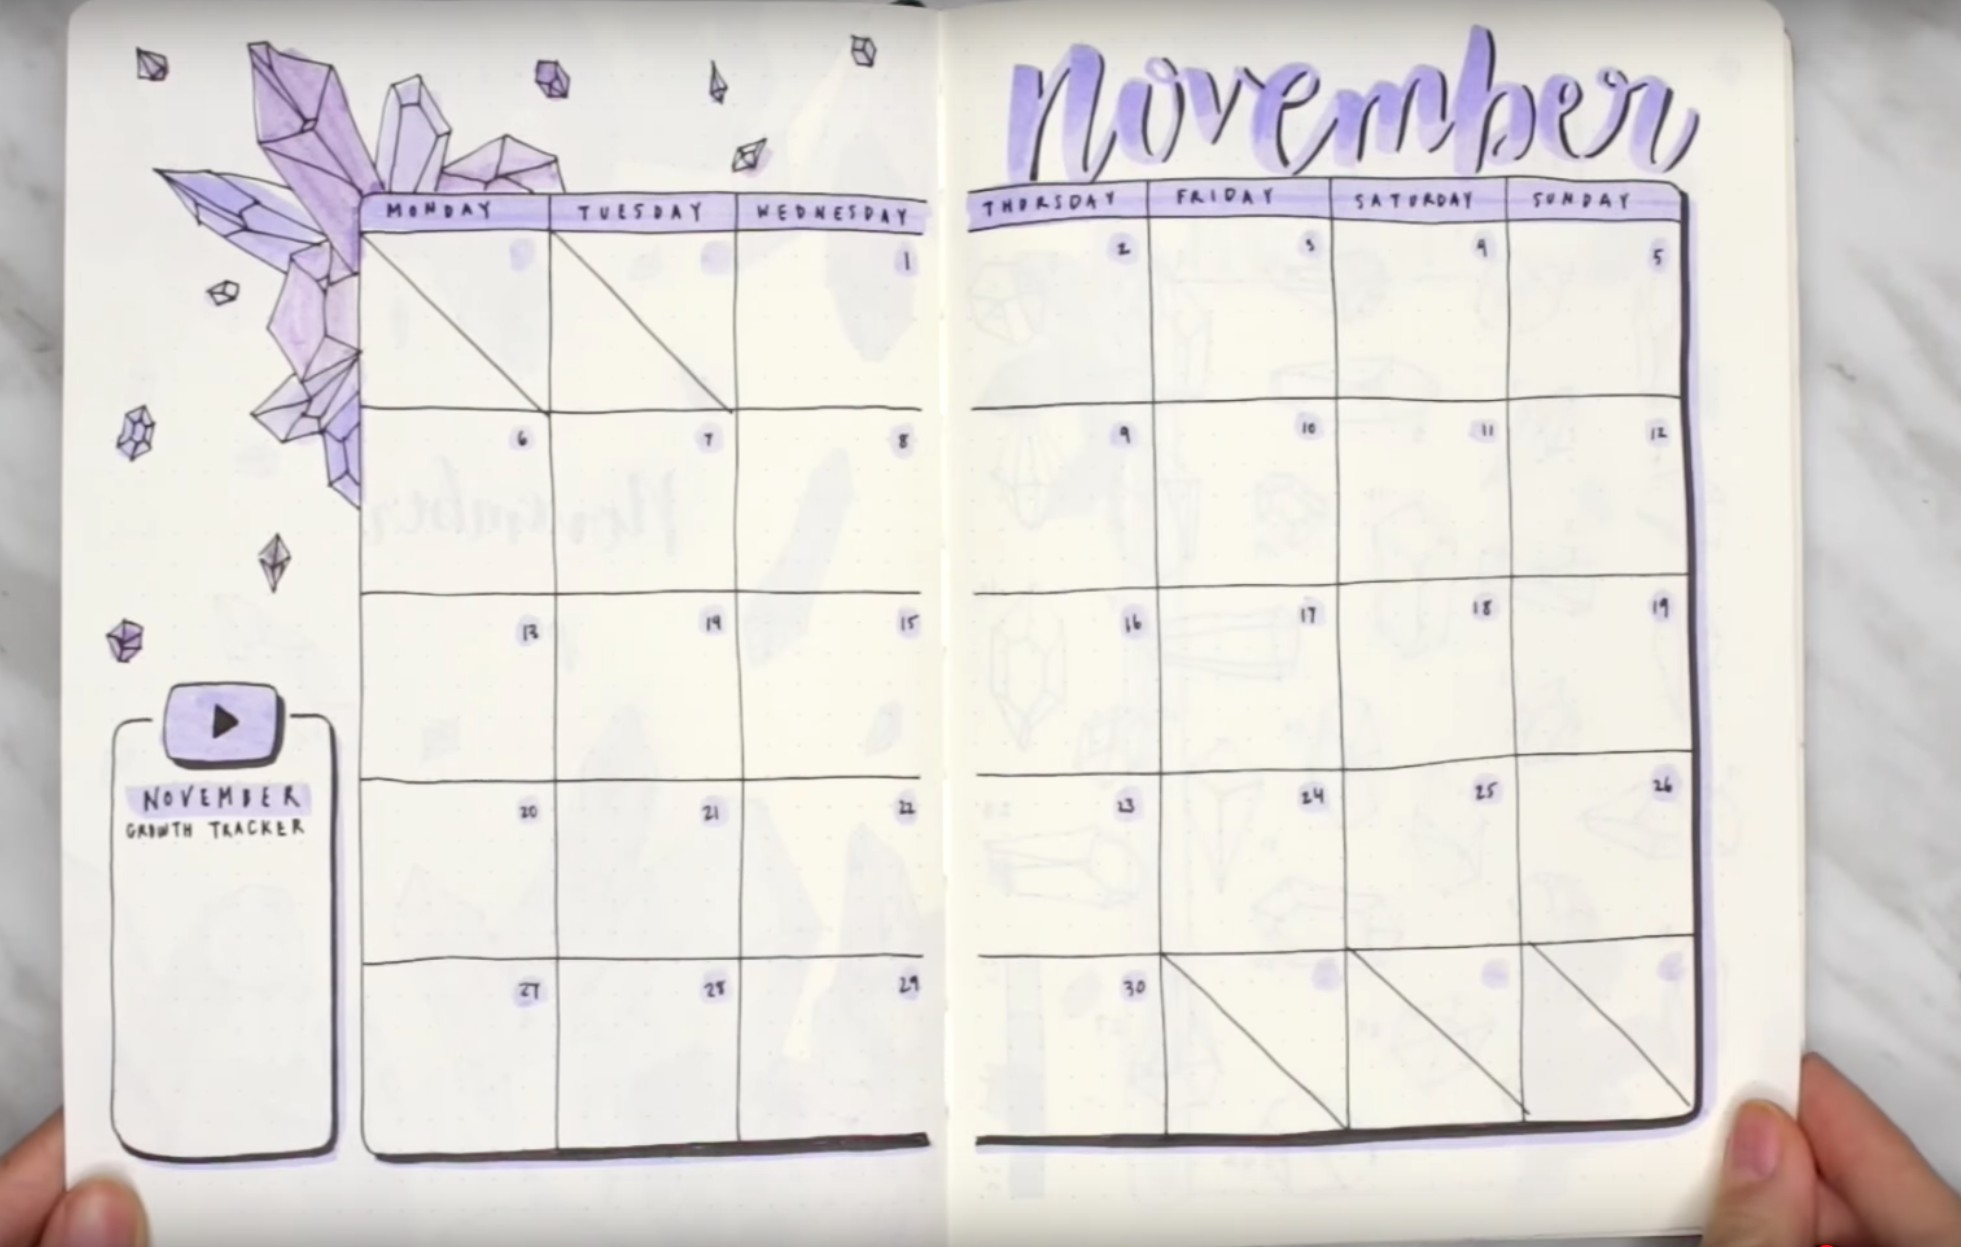 Calendario Mensile 2019 Da Stampare Marbaro Más Actual Bullet Journal Bujo November organisation Crystal Purple Of Calendario Mensile 2019 Da Stampare Marbaro Mejores Y Más Novedosos Eur Lex D0755 En Eur Lex